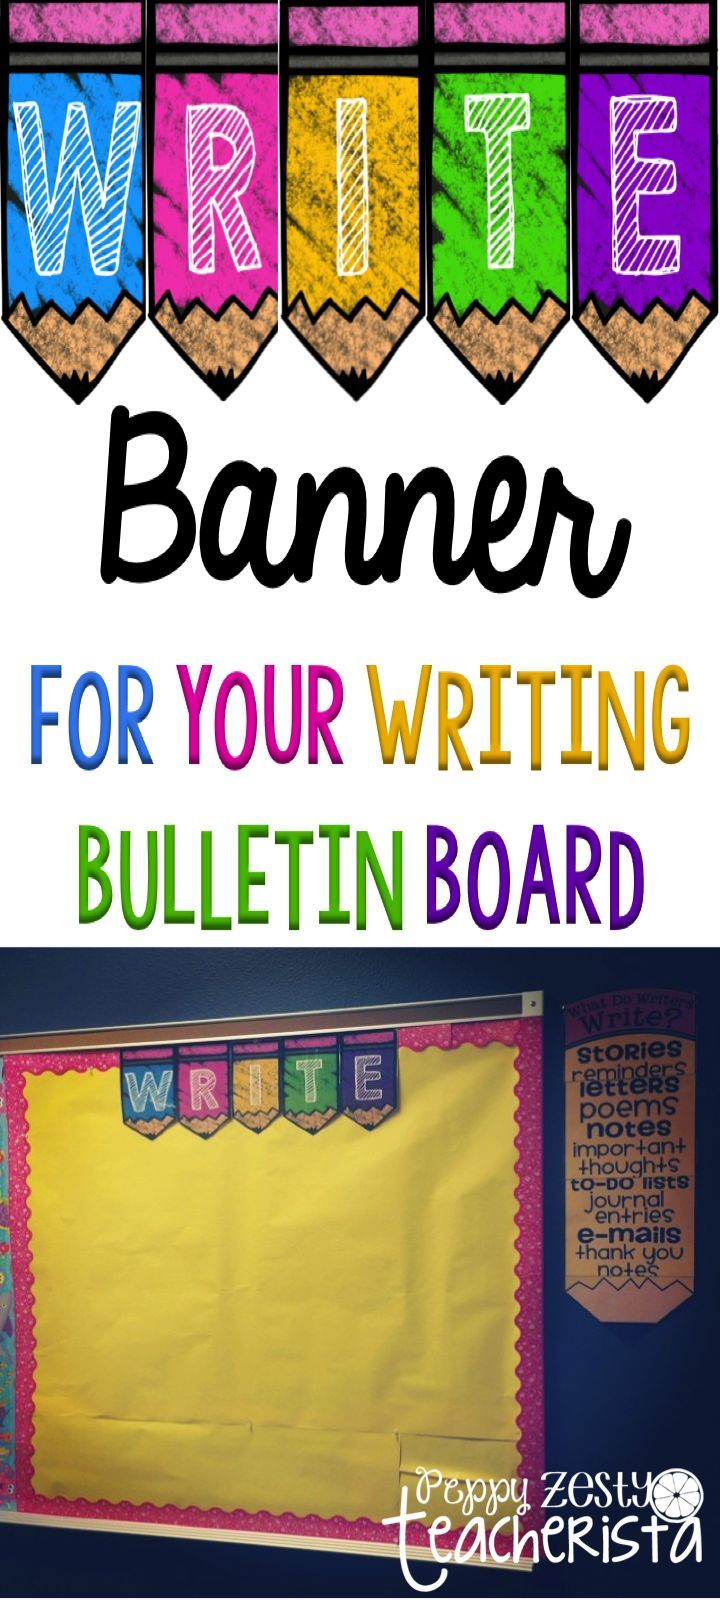 FREE Write banner for your bulletin board! Works with all color schemes!